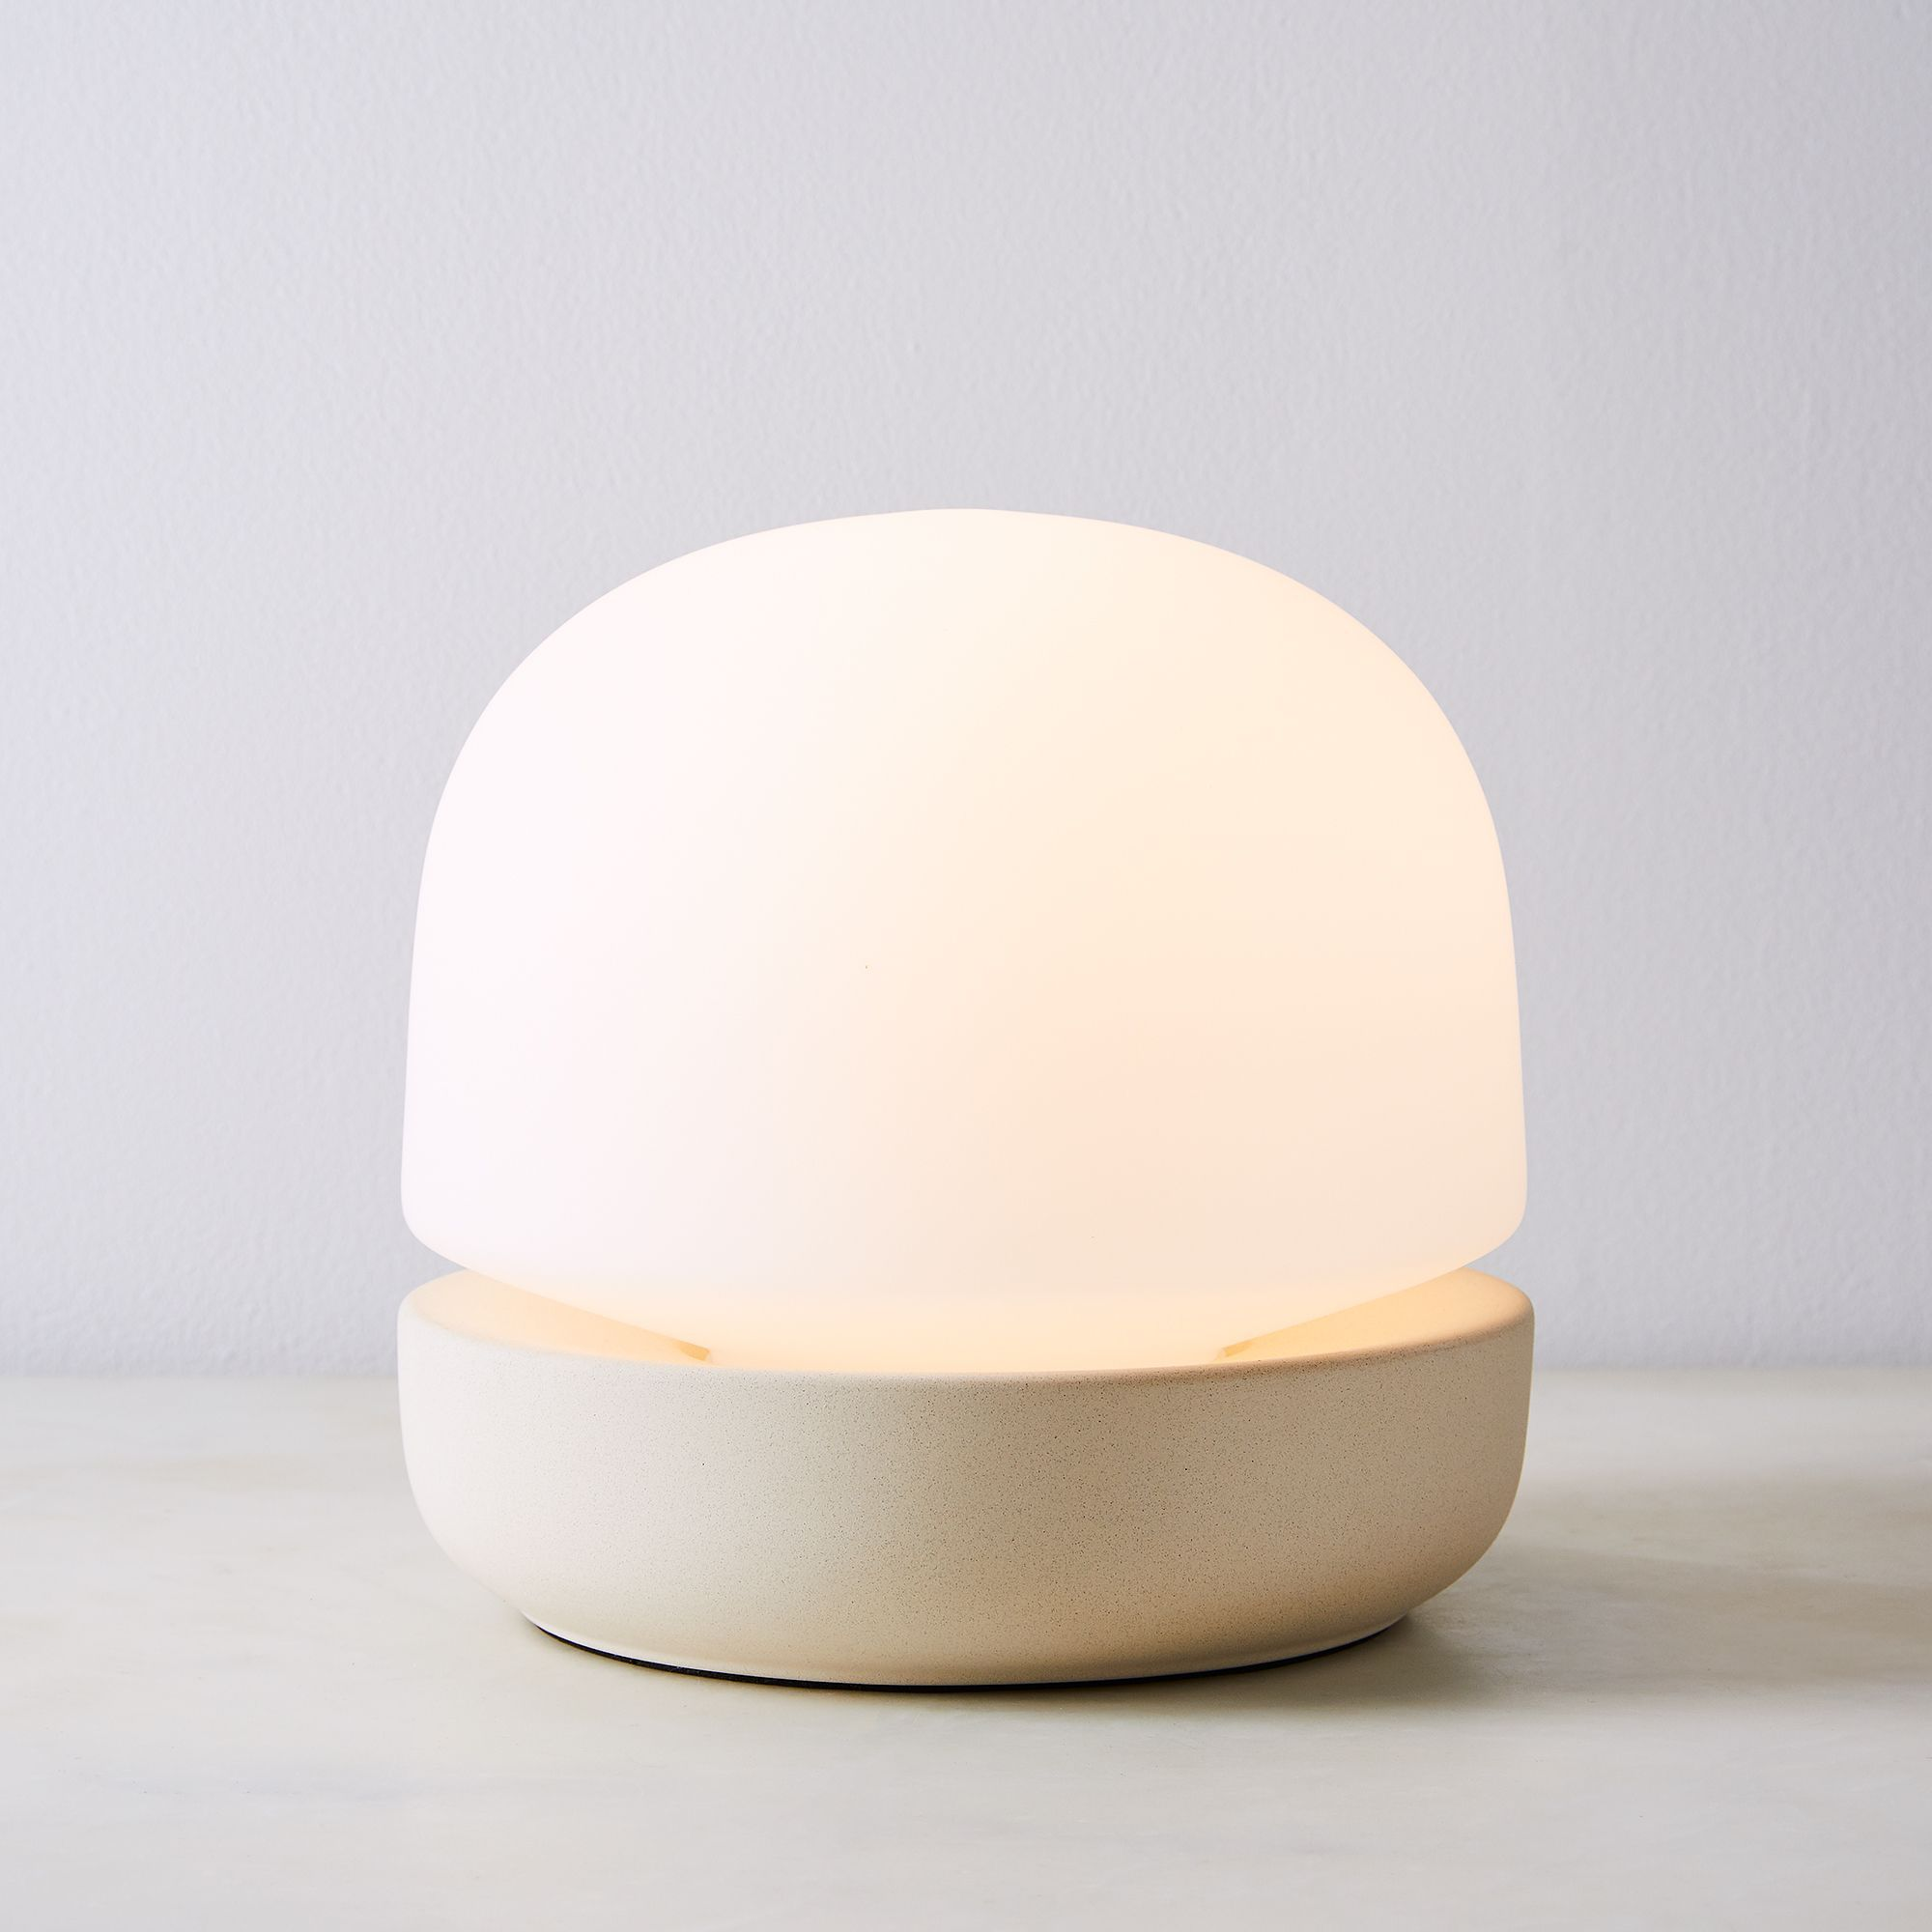 Dome Table Lamp in 2020 Table lamp, Modern lamp, Lamp